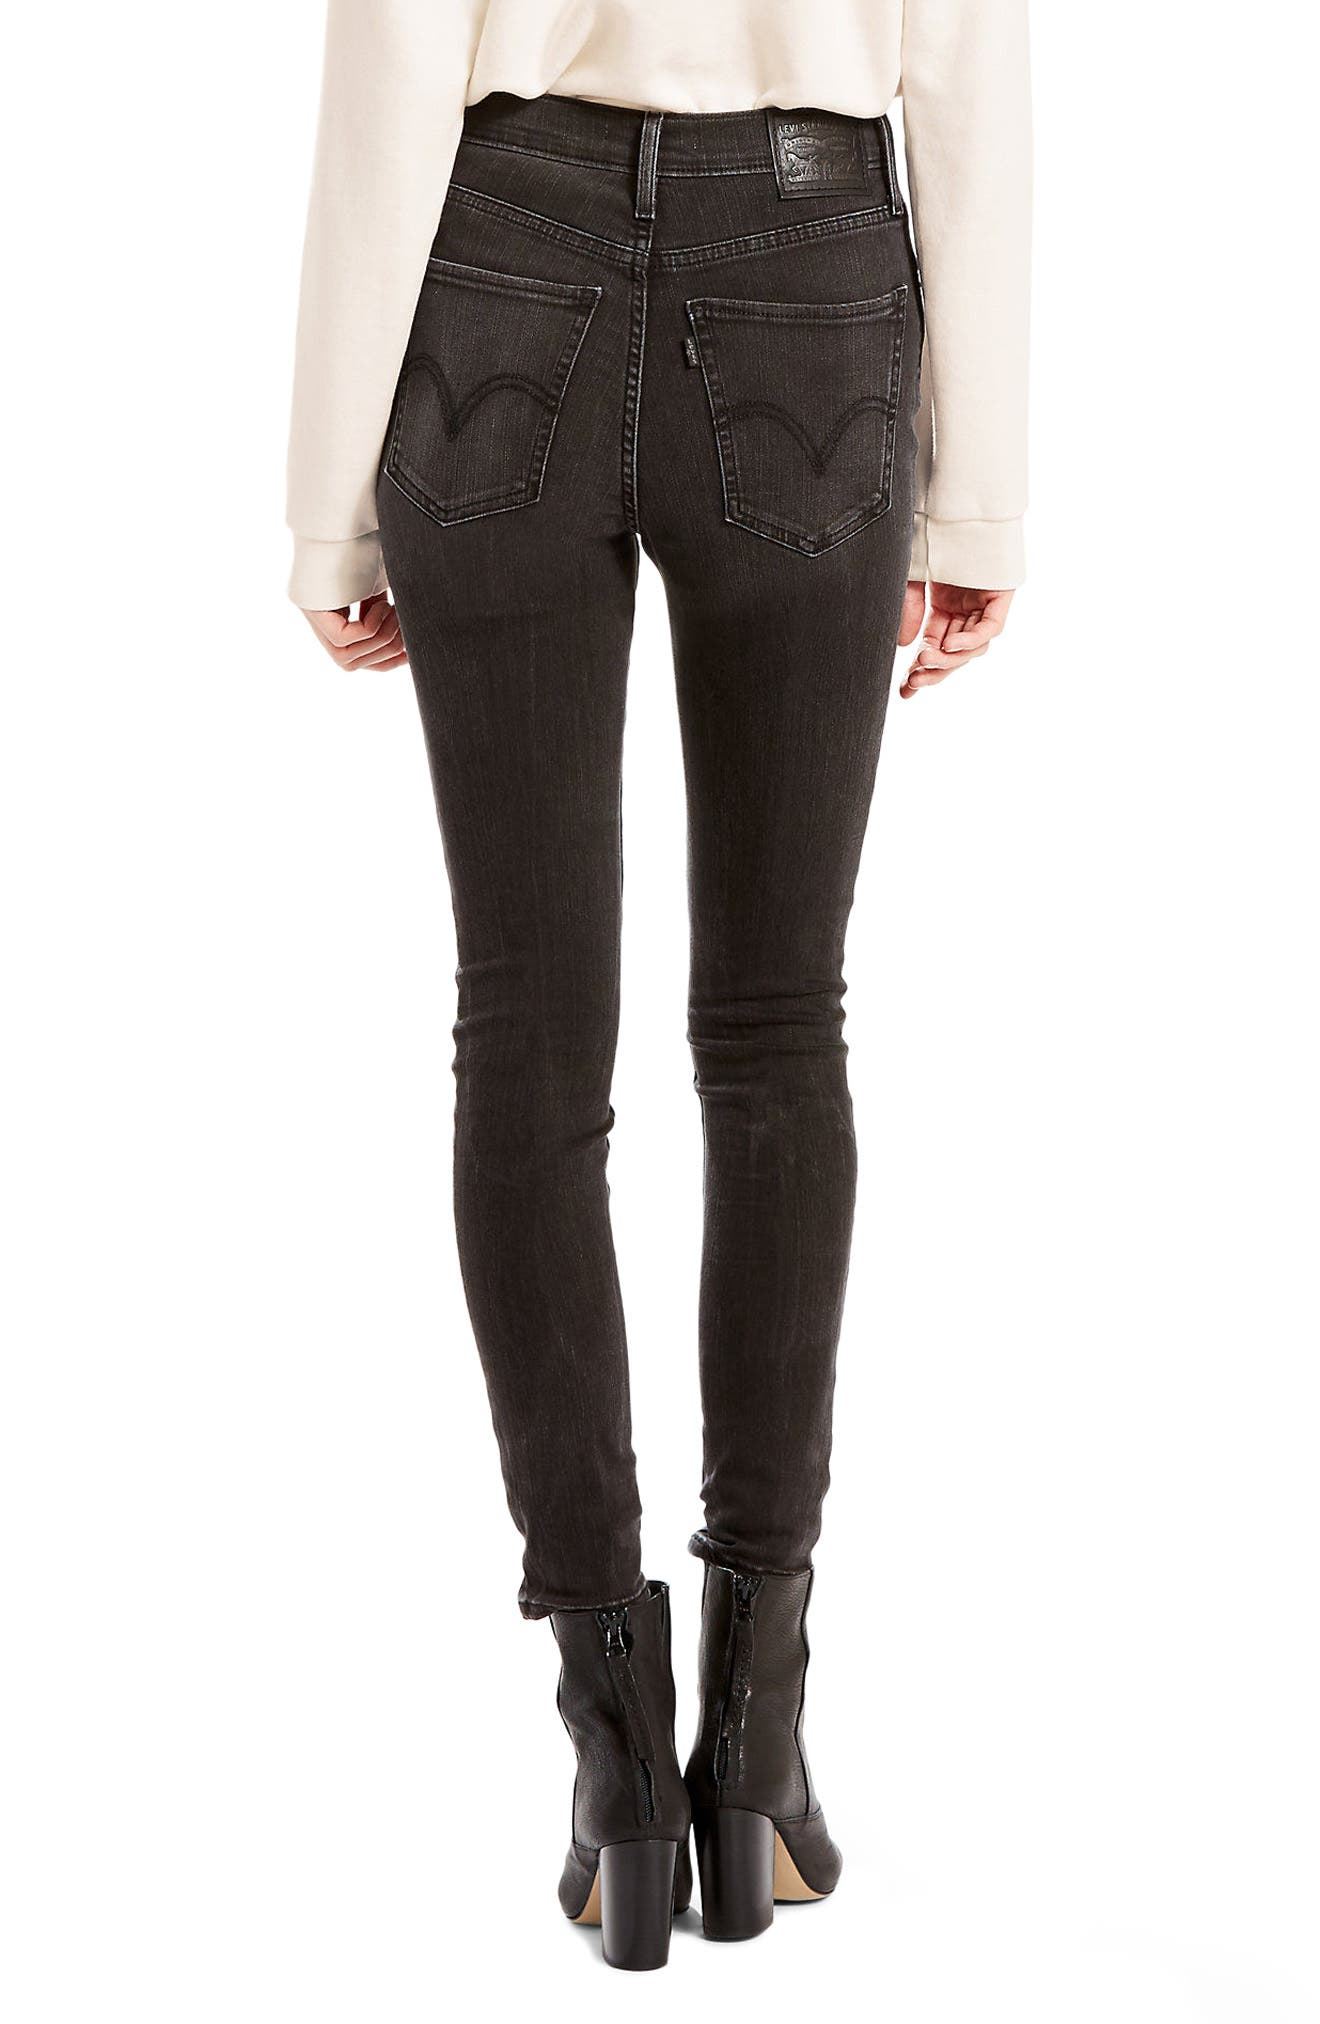 Mile High High Waist Super Skinny Jeans,                             Alternate thumbnail 2, color,                             020